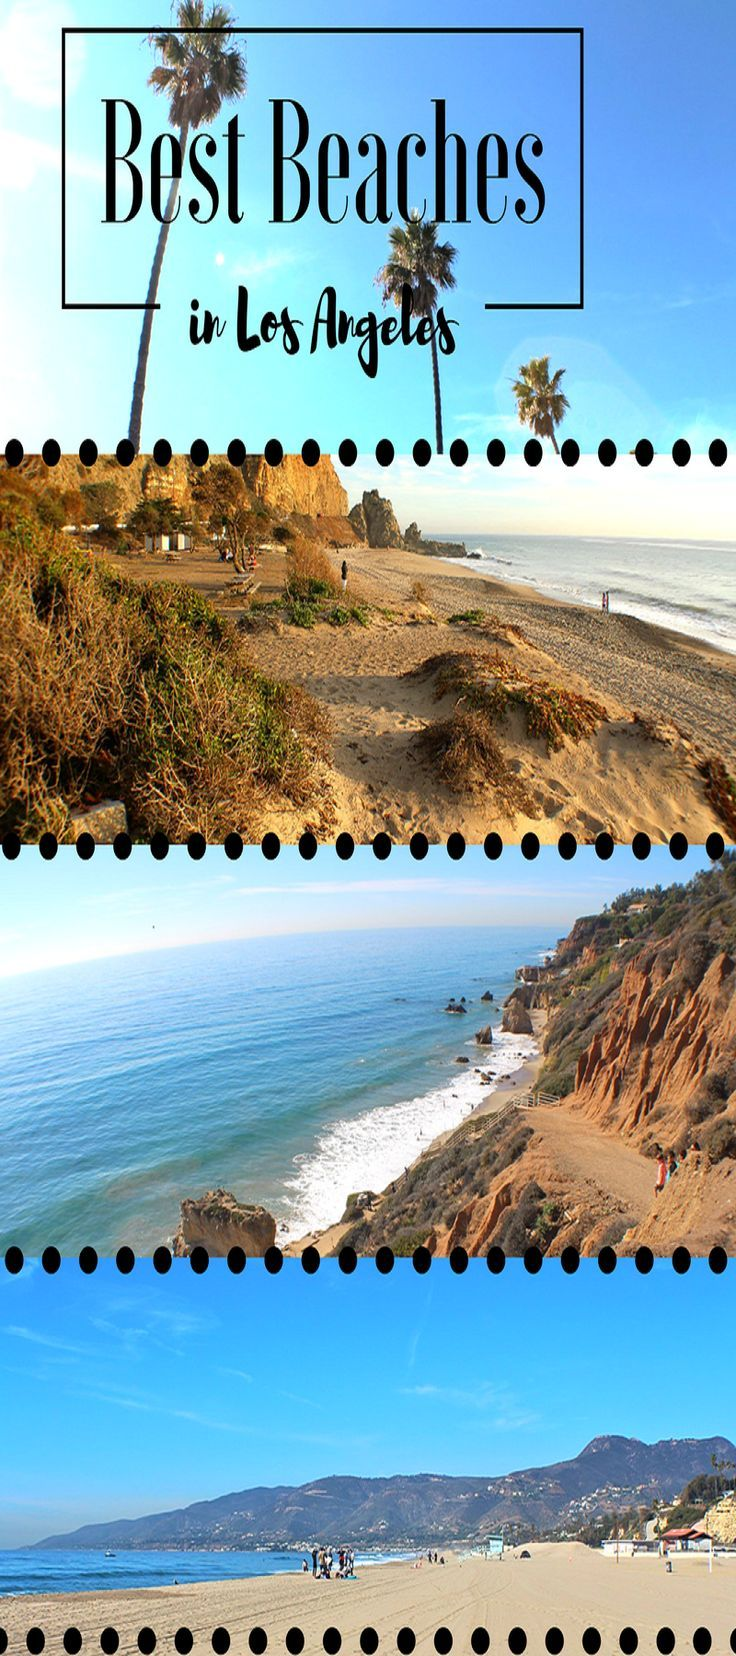 Best Beaches In Malibu 7 Beautiful Secluded Beaches You Should Visit California Travel Road Trips Los Angeles Beaches California Travel